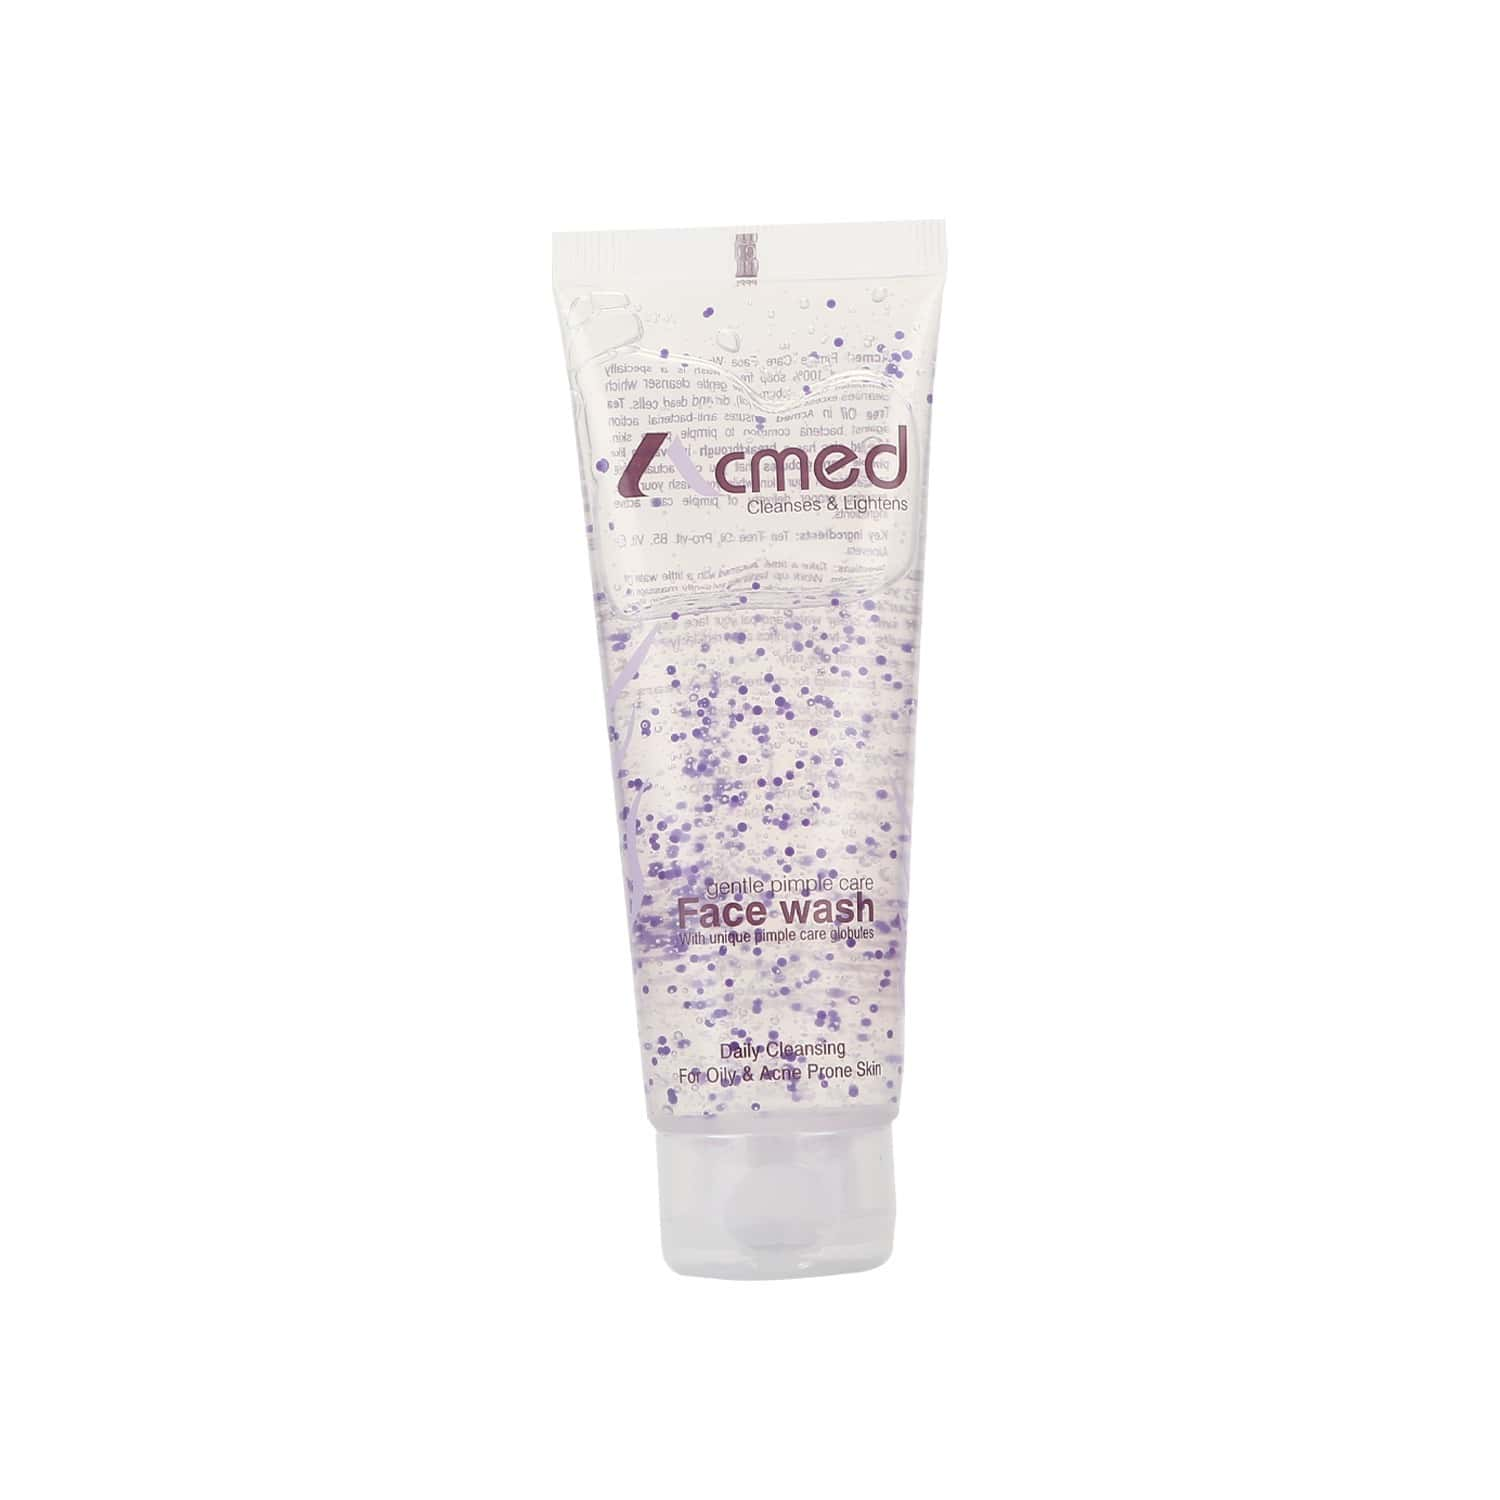 Acmed Pimple Care Face Wash - 70 Gm